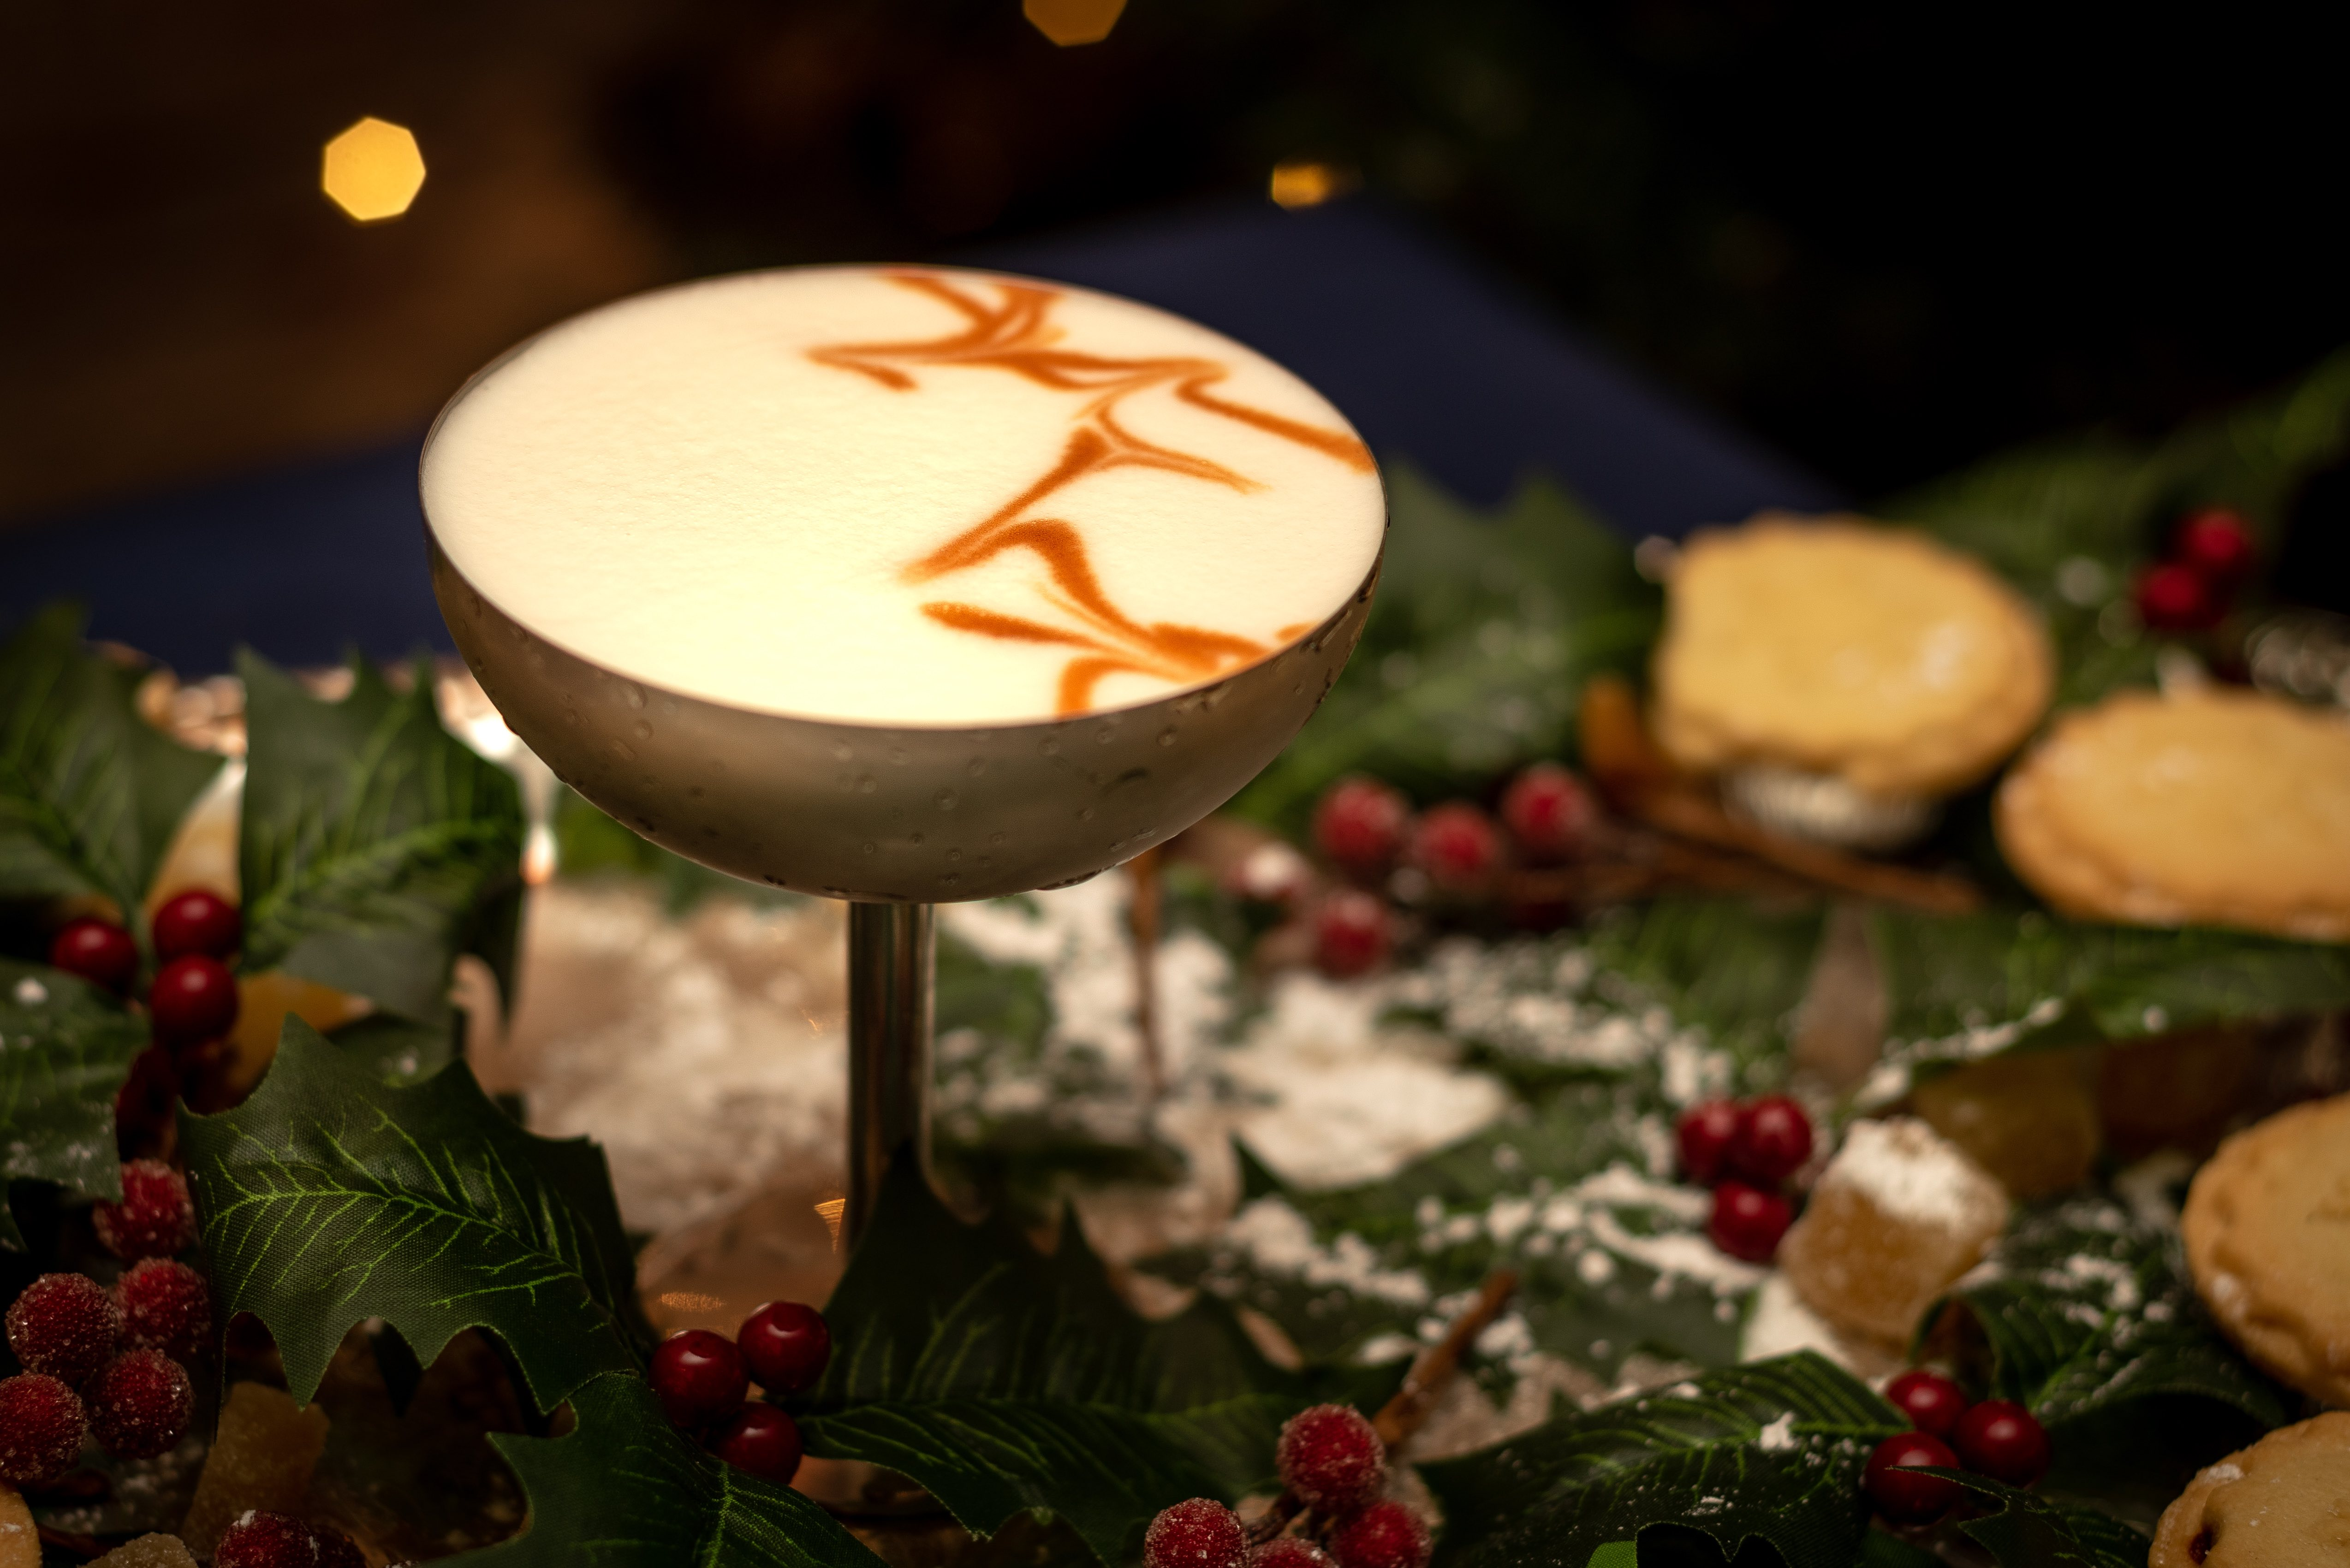 Mince Pie Drinks in London, Mince Pie Drinks London, mince pie cocktails london, mince pie cocktails in London